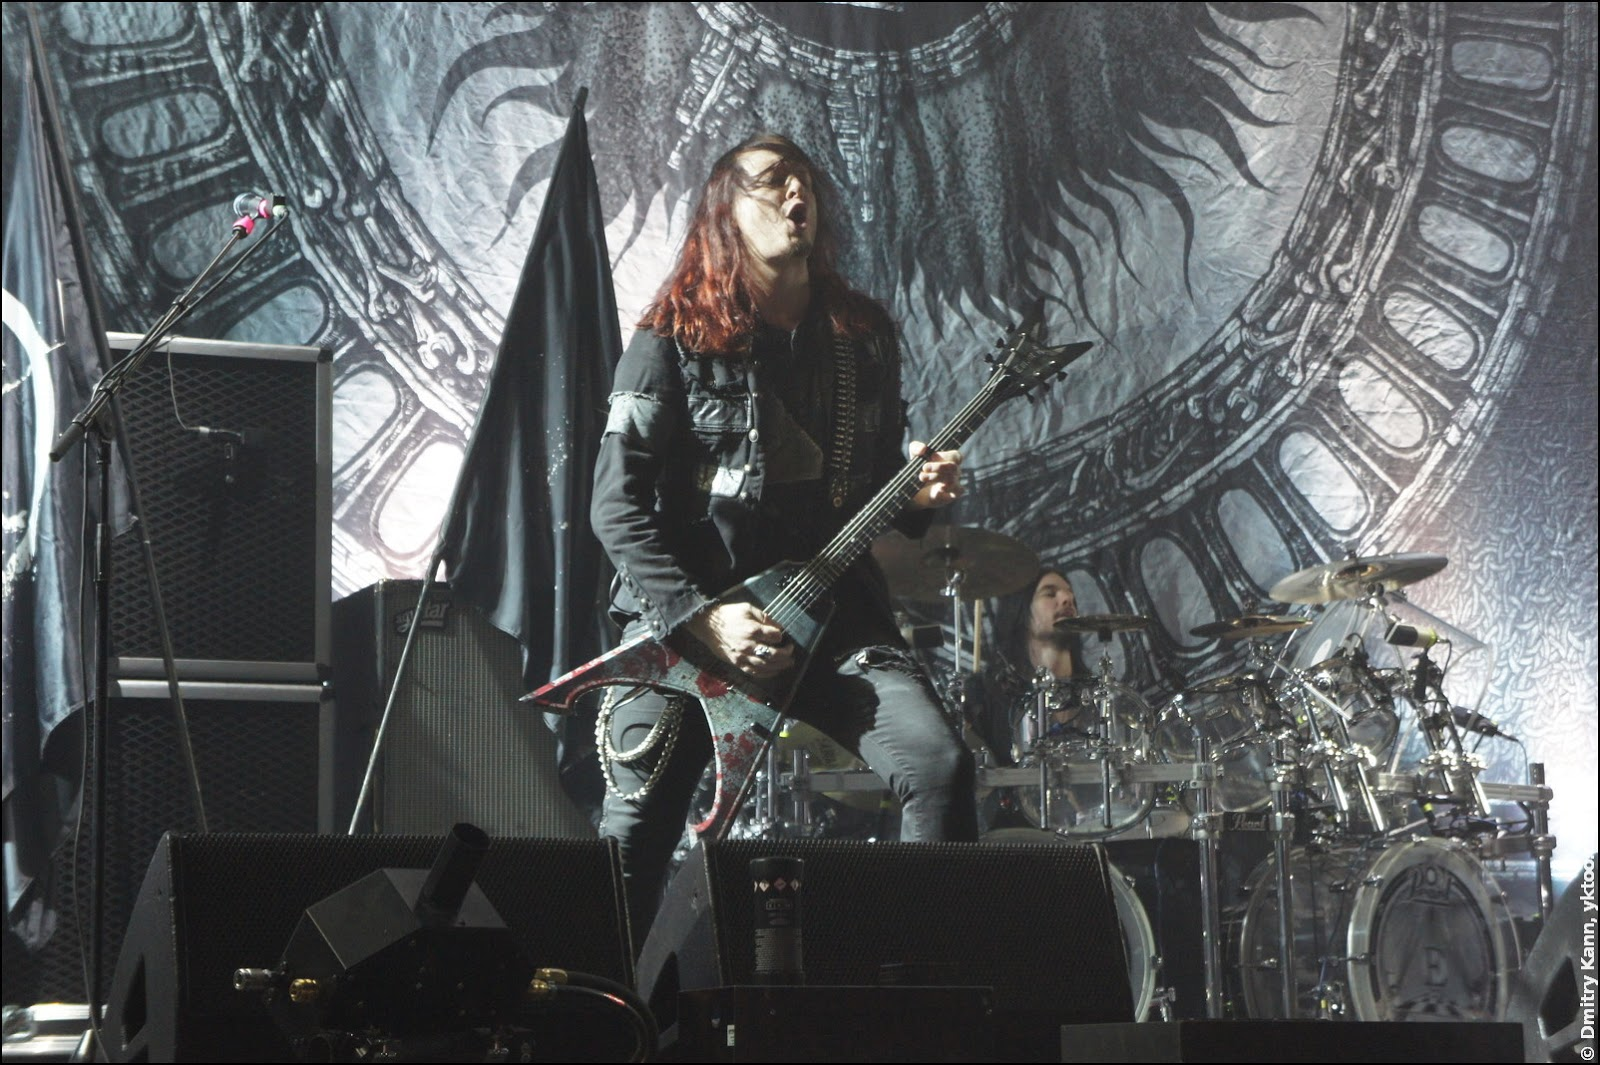 Arch Enemy: Michael Amott, drummer Daniel Erlandsson at the back.